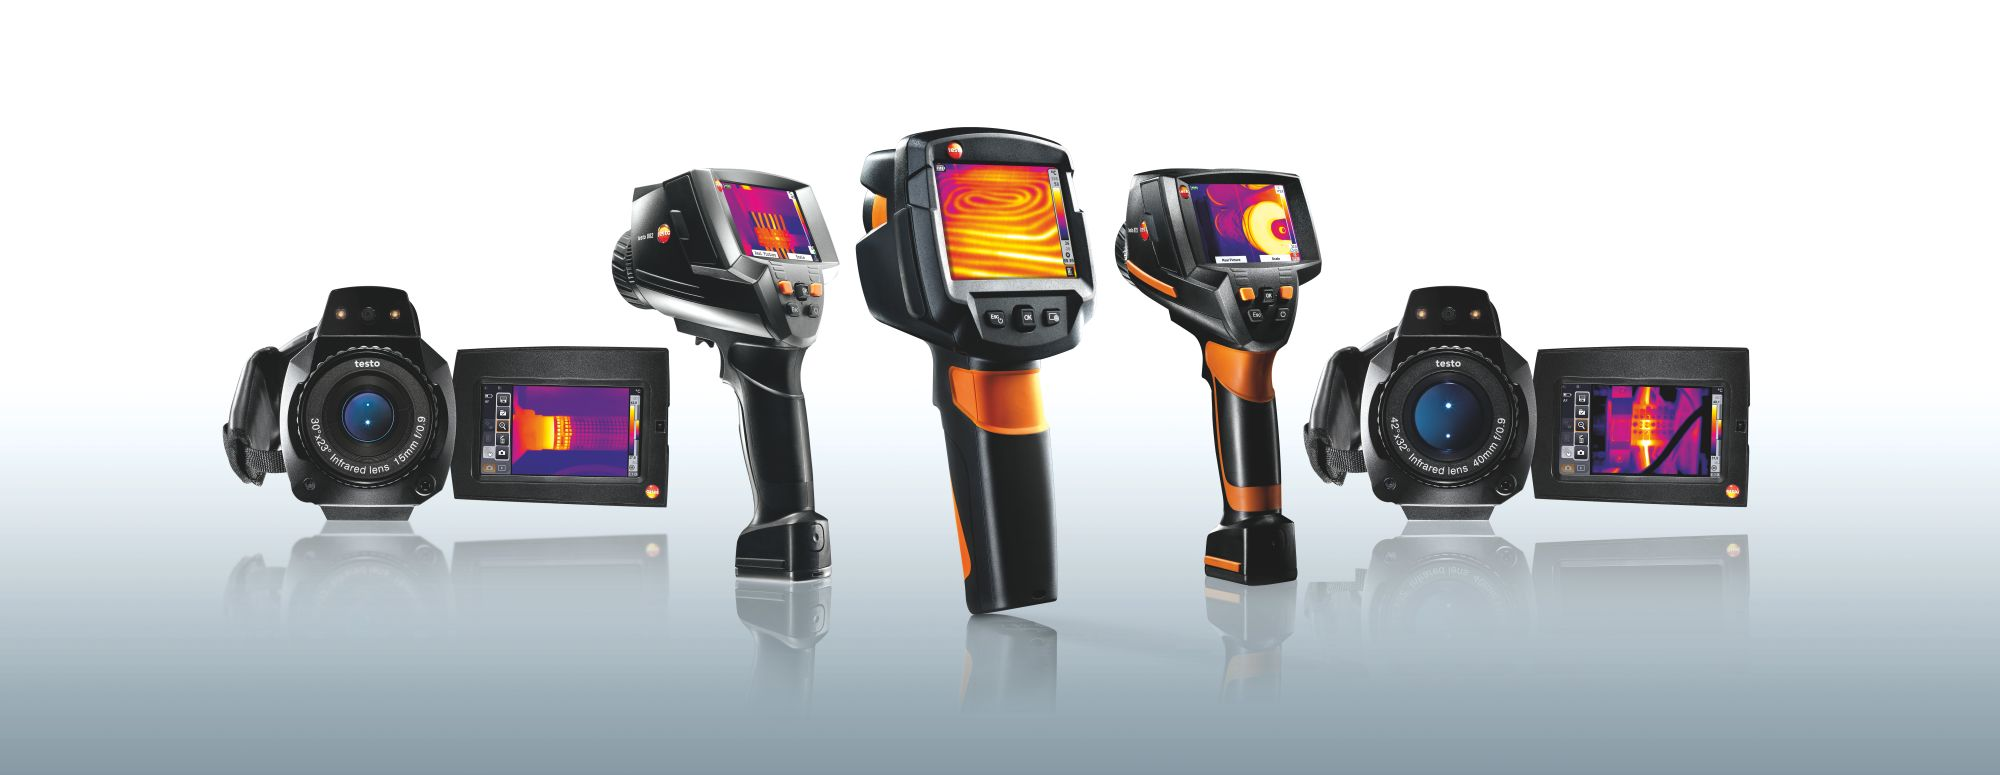 Thermal imagers from Testo